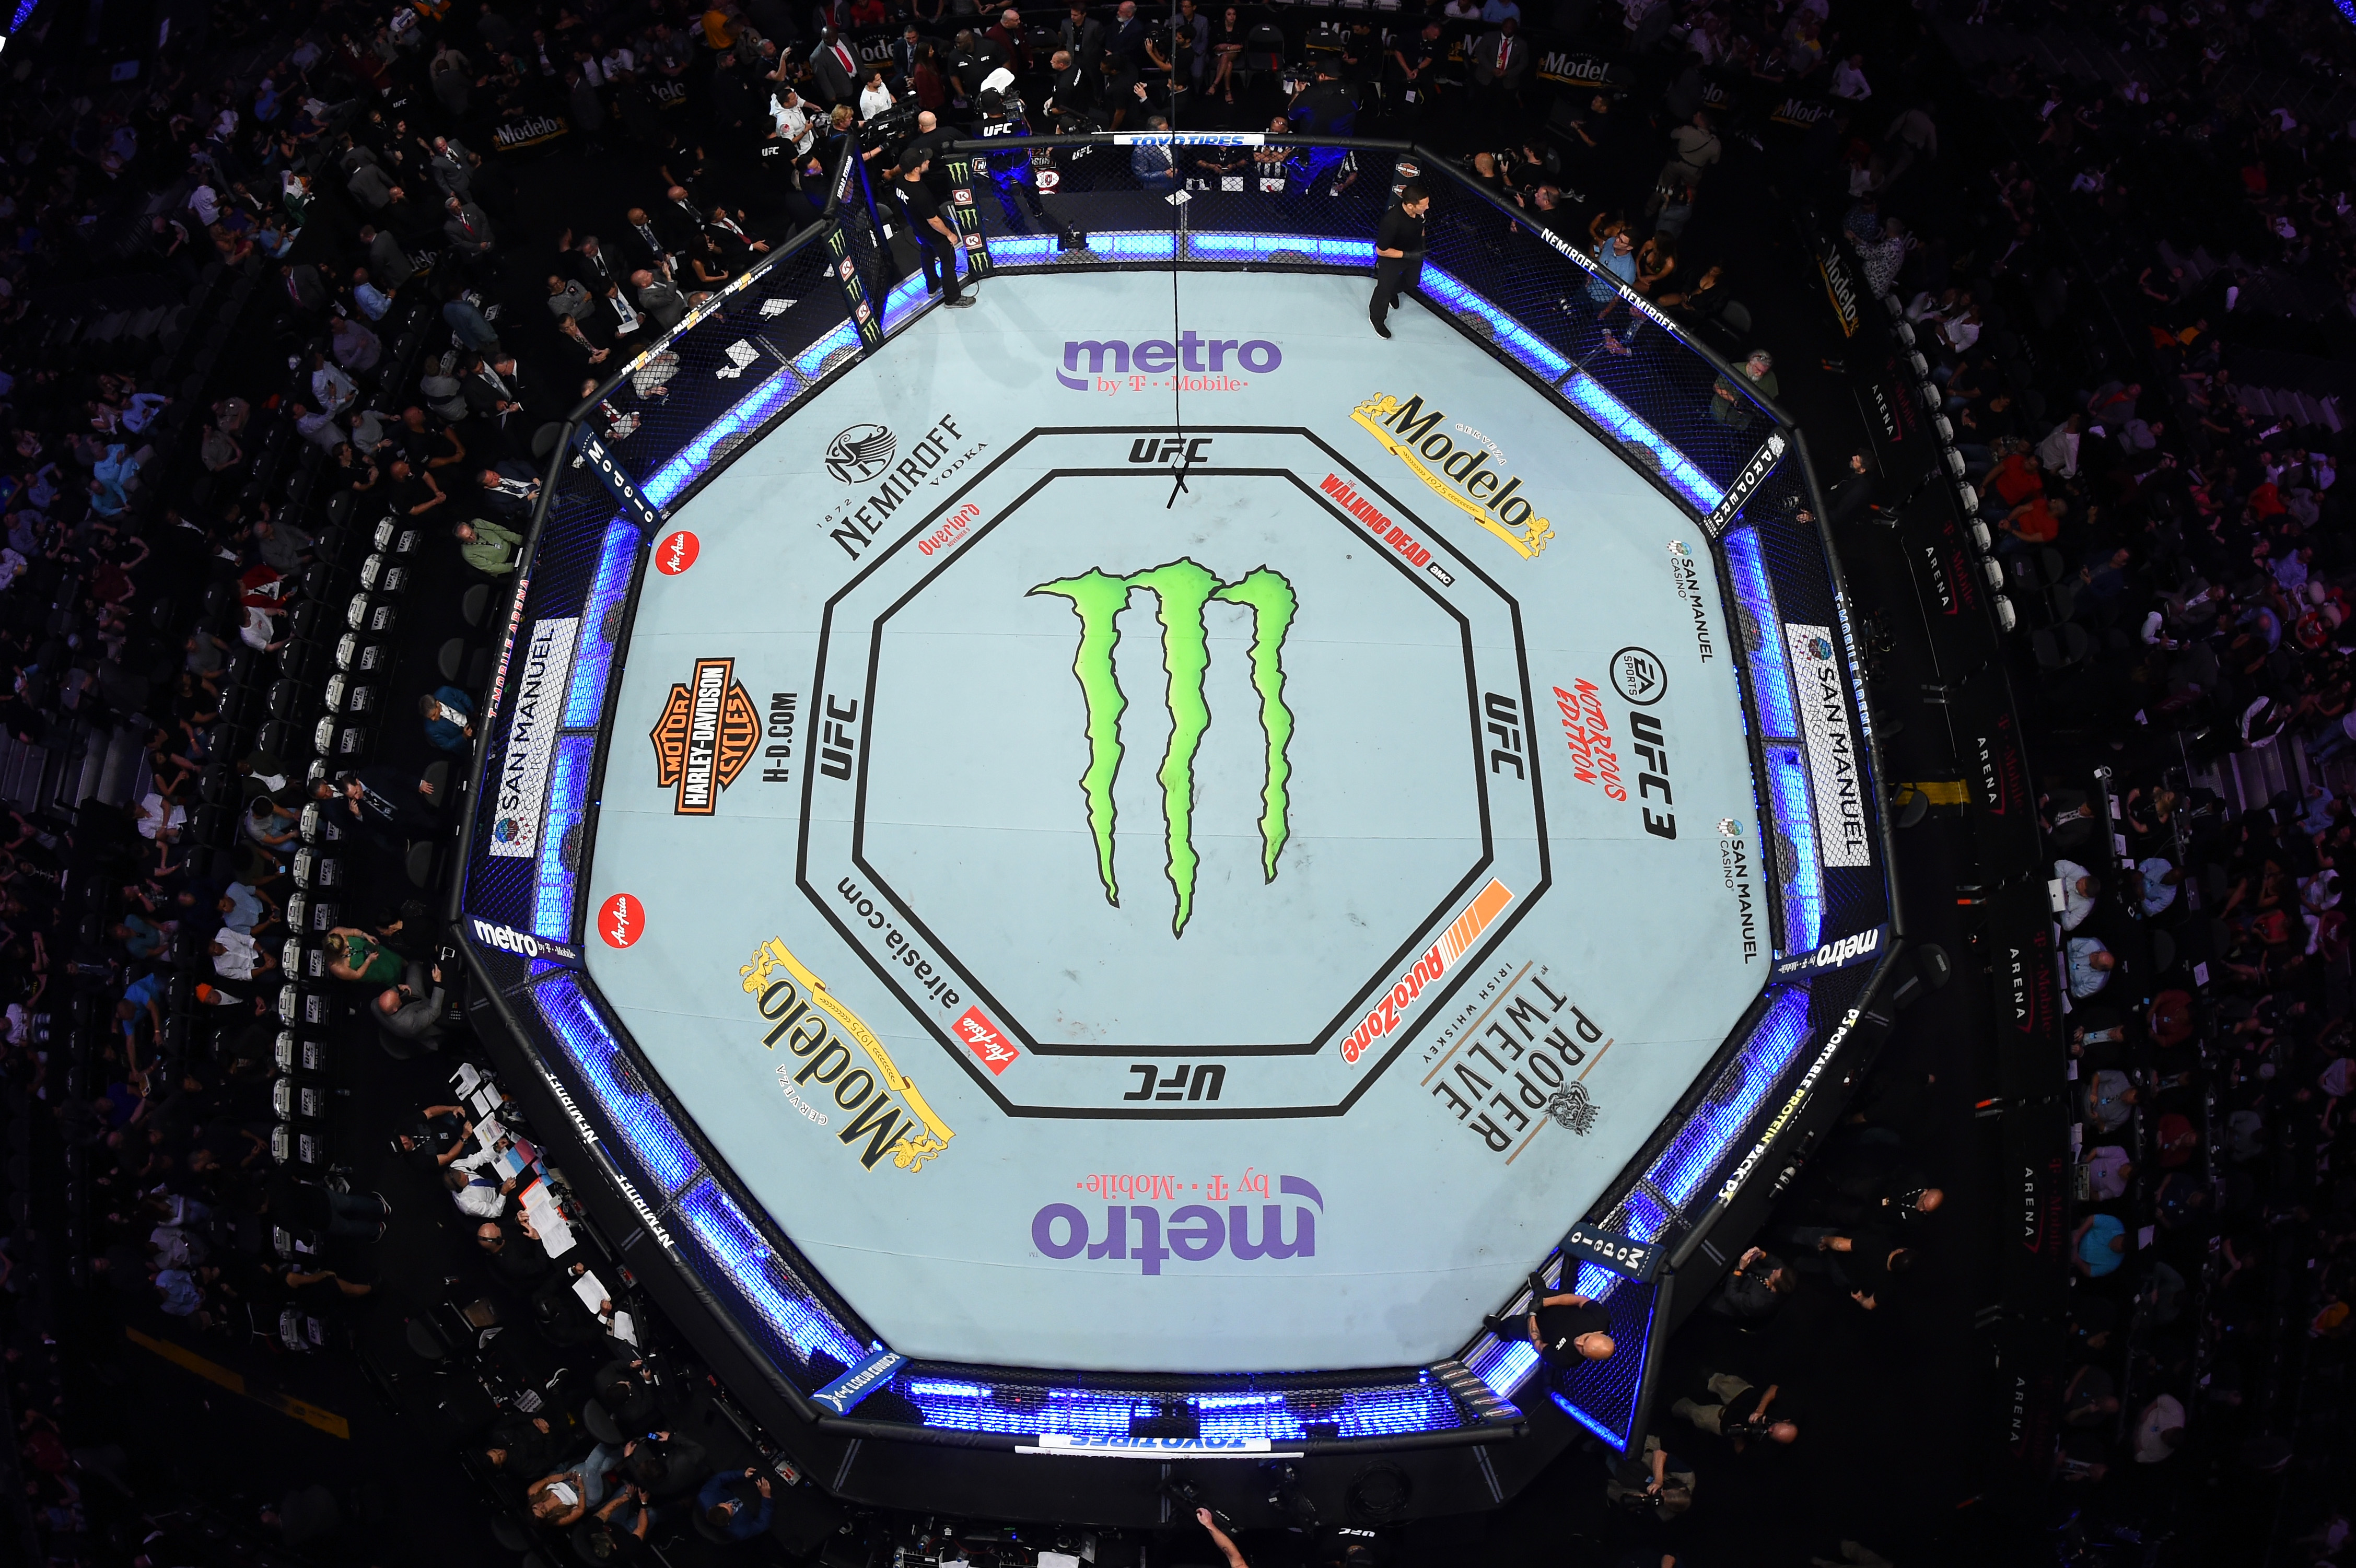 The Octagon Ufc